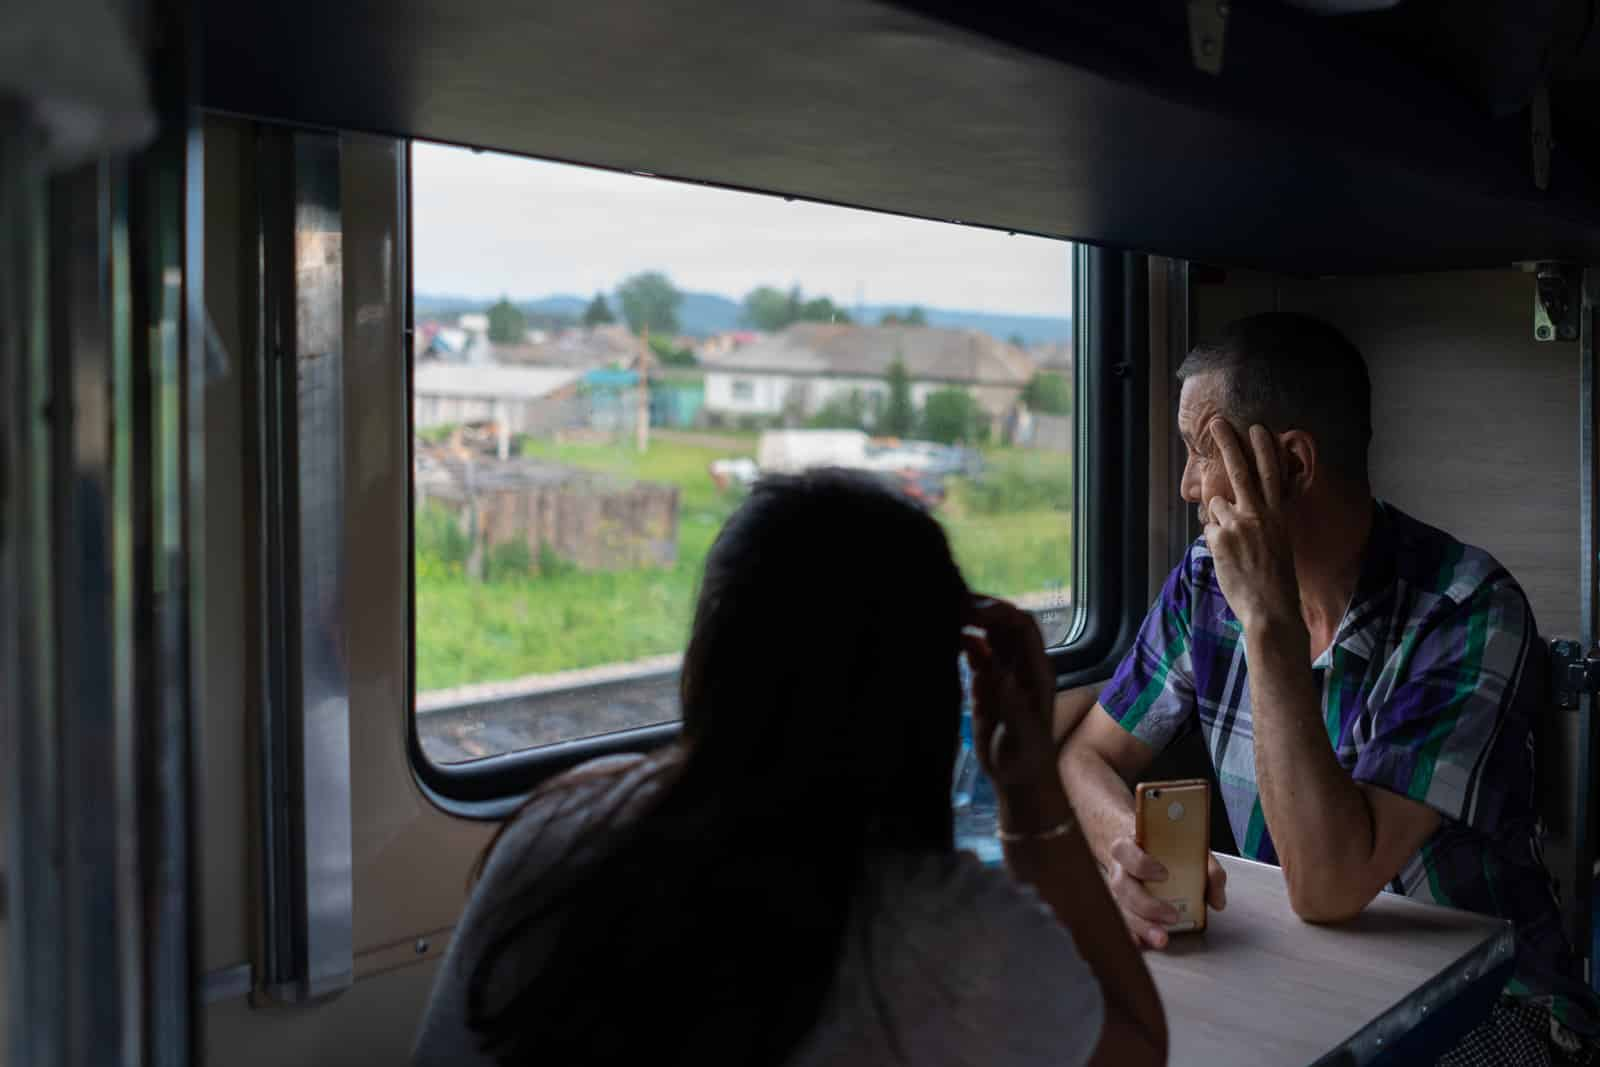 Man looking out window on train to Severobaikalsk, Siberia, Russia